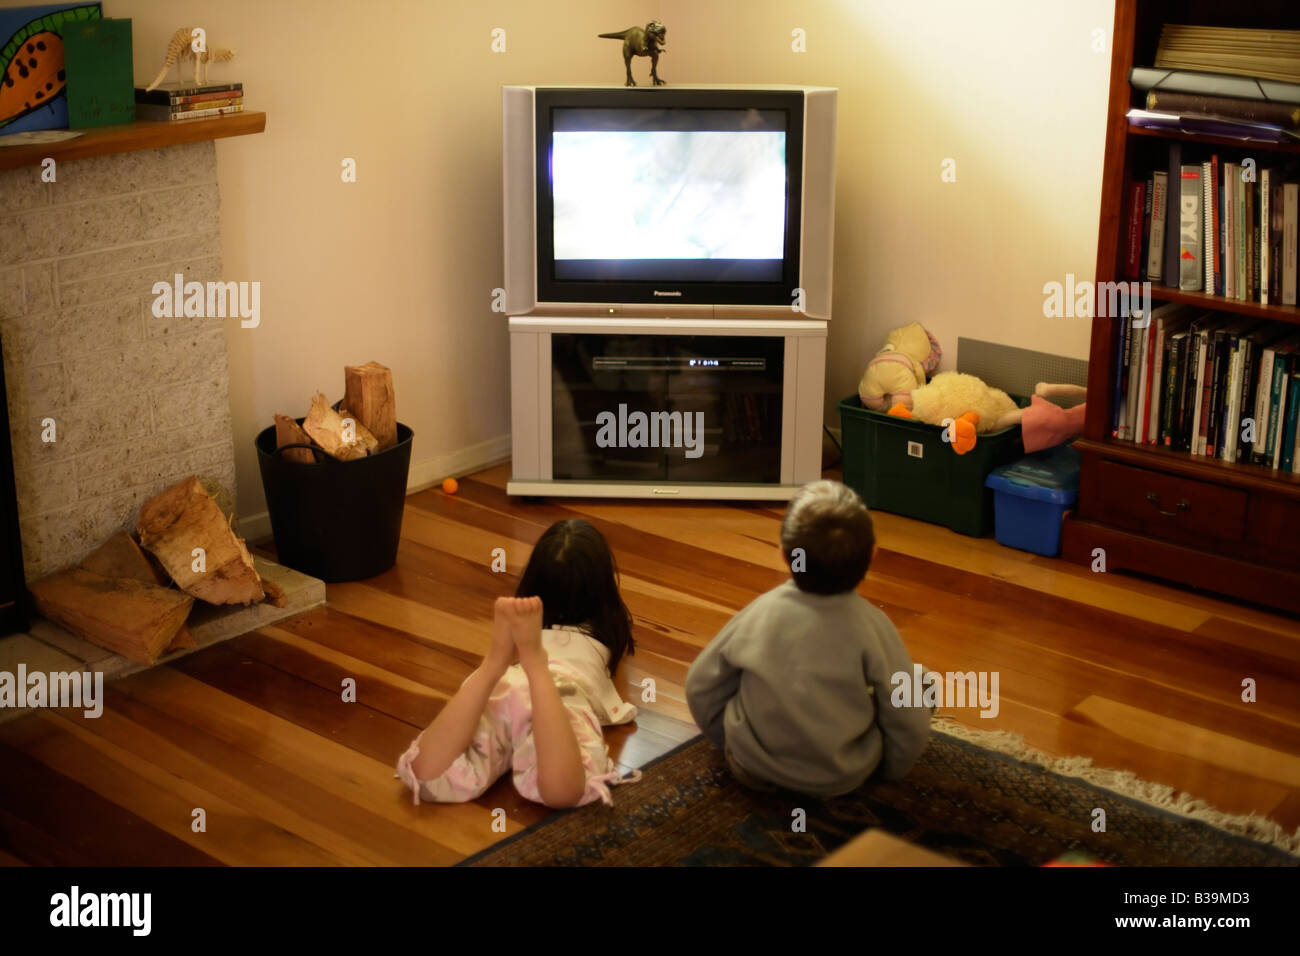 Children watch TV - Stock Image